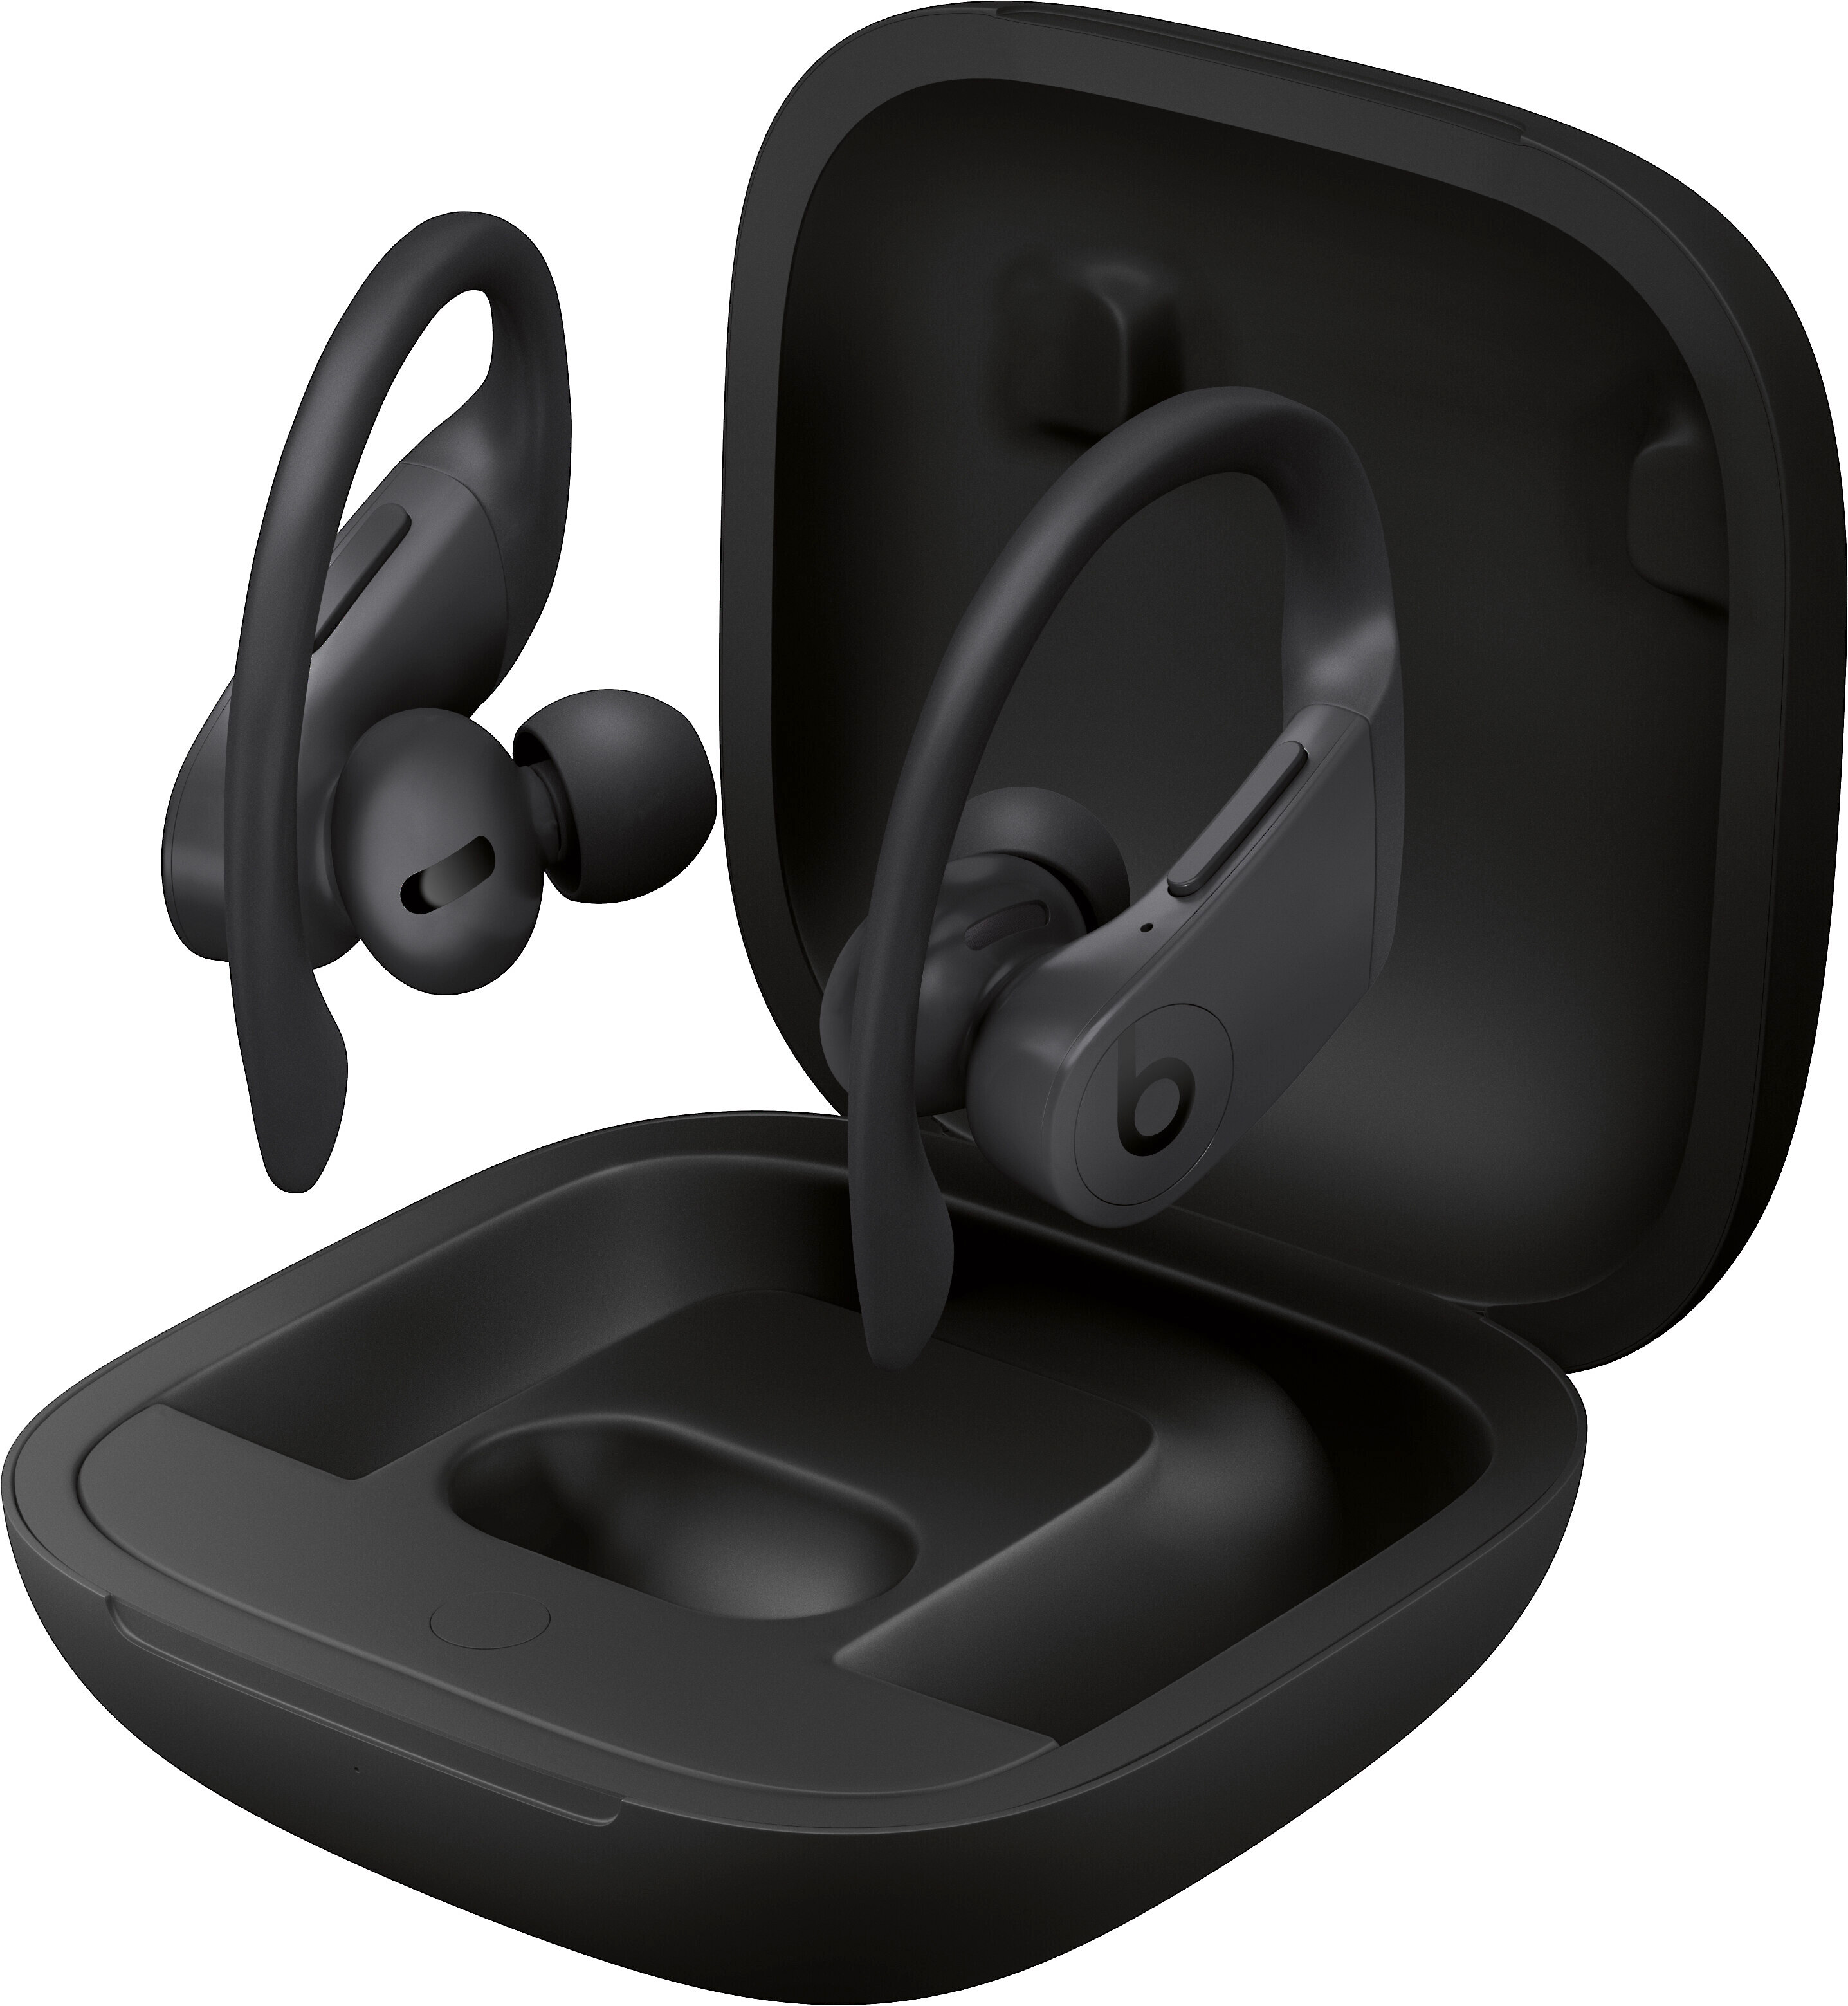 Beats By Dr Dre Powerbeats Pro Black Totally Wireless Sports Earbuds With Apple H1 Chip At Crutchfield